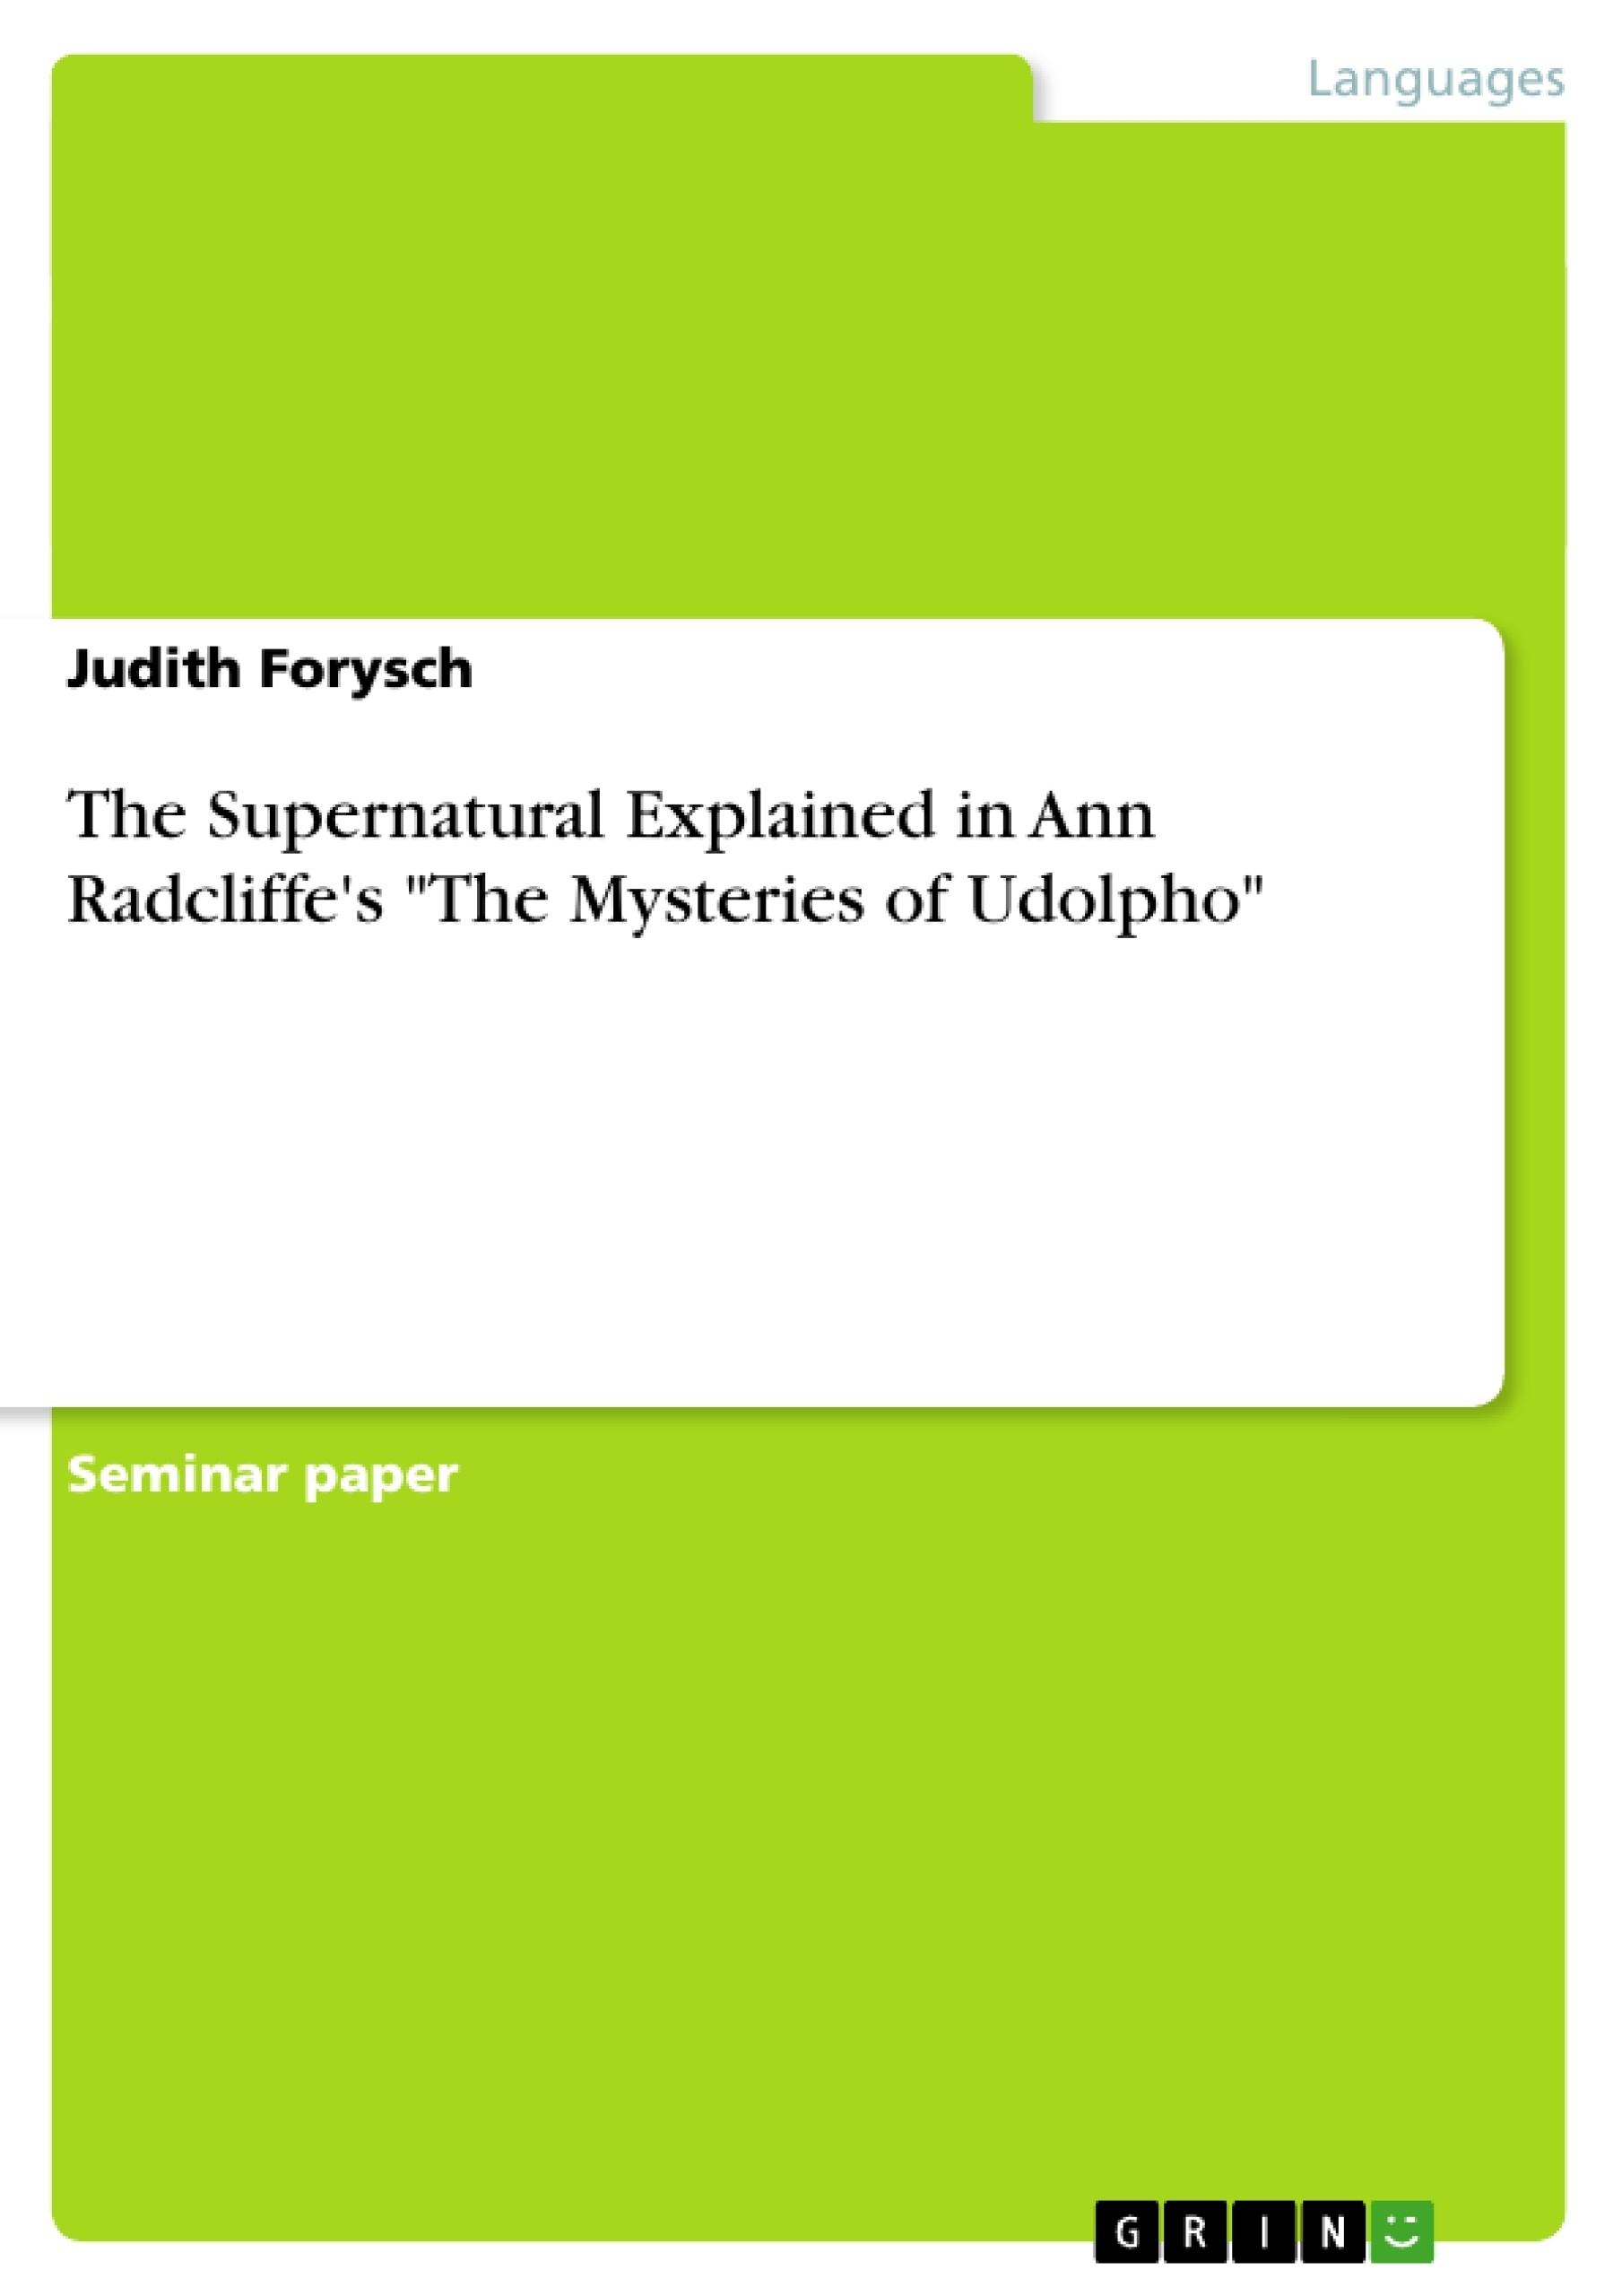 The Supernatural Explained in Ann Radcliffe&20;s